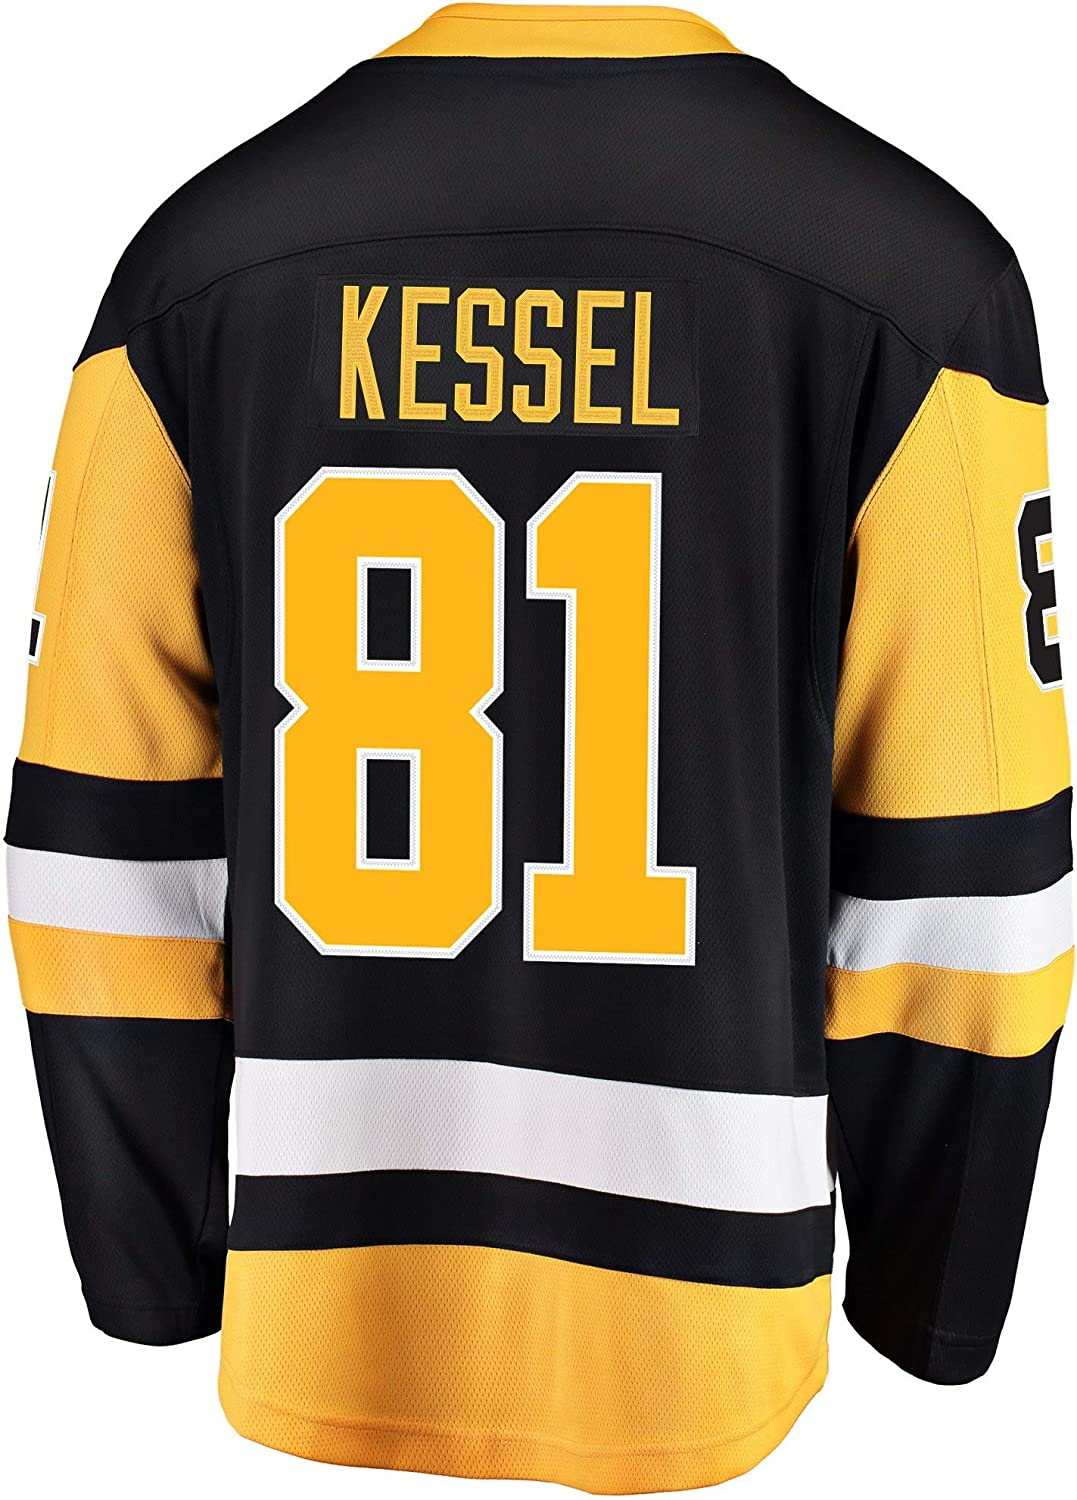 phil kessel youth jersey